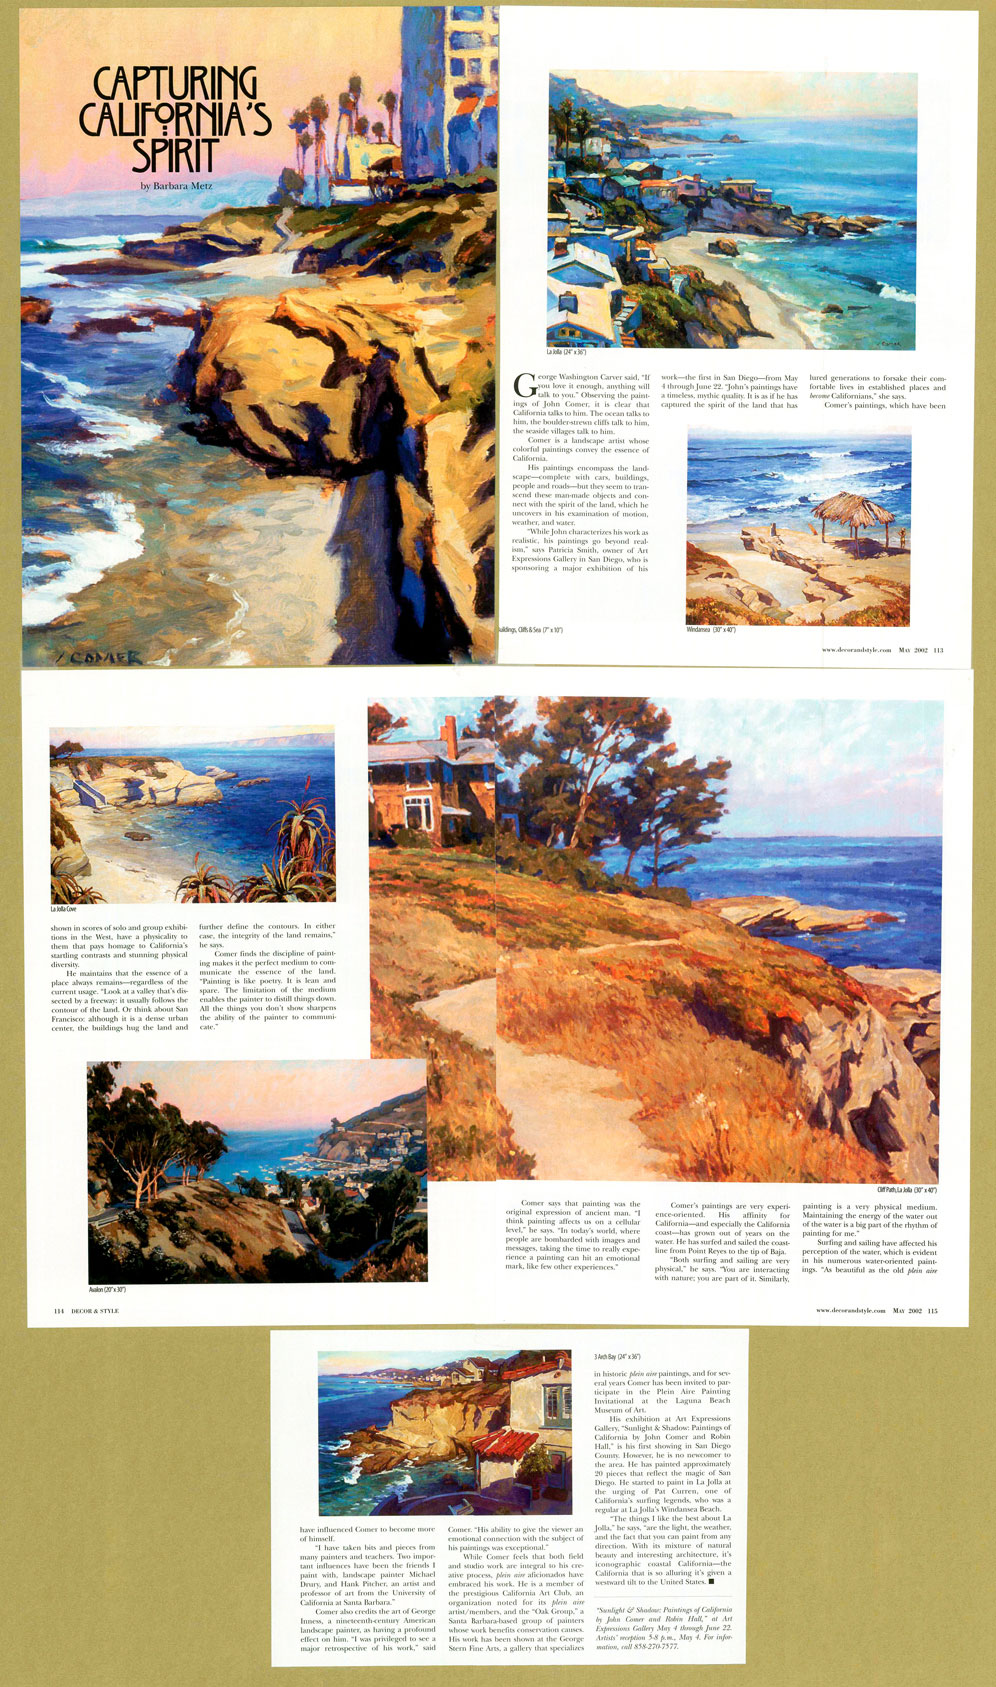 Capturing California's Spirit magazine article